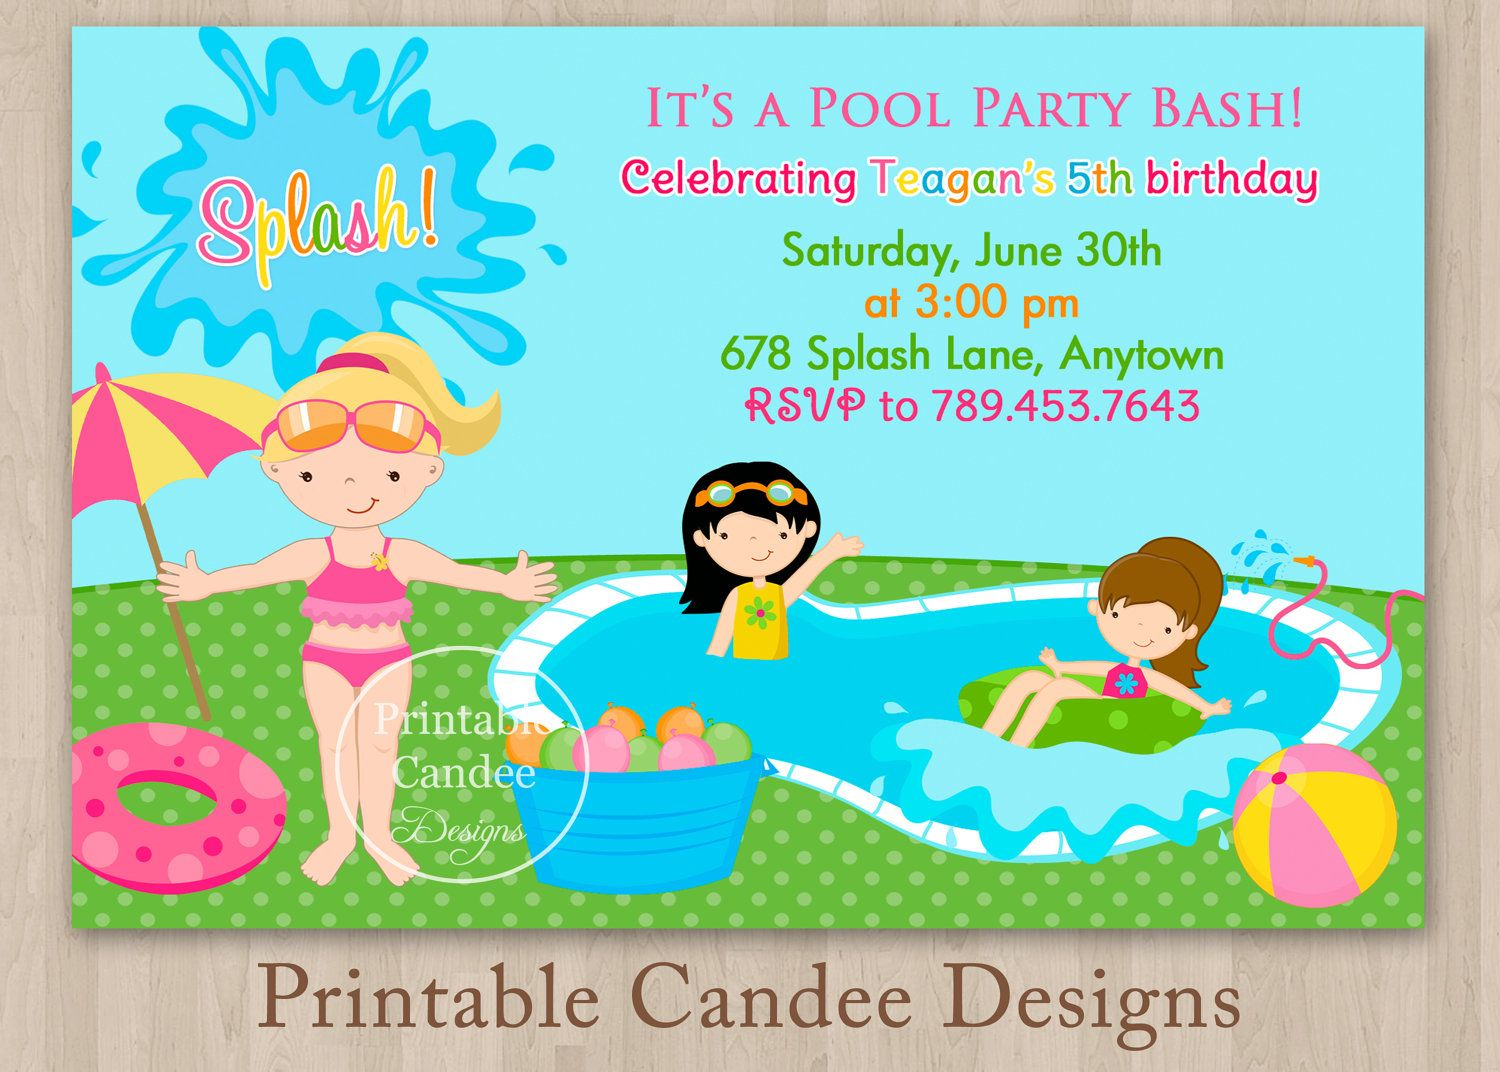 Pool Party Invitations For Kids Free Printable | Pool party ...